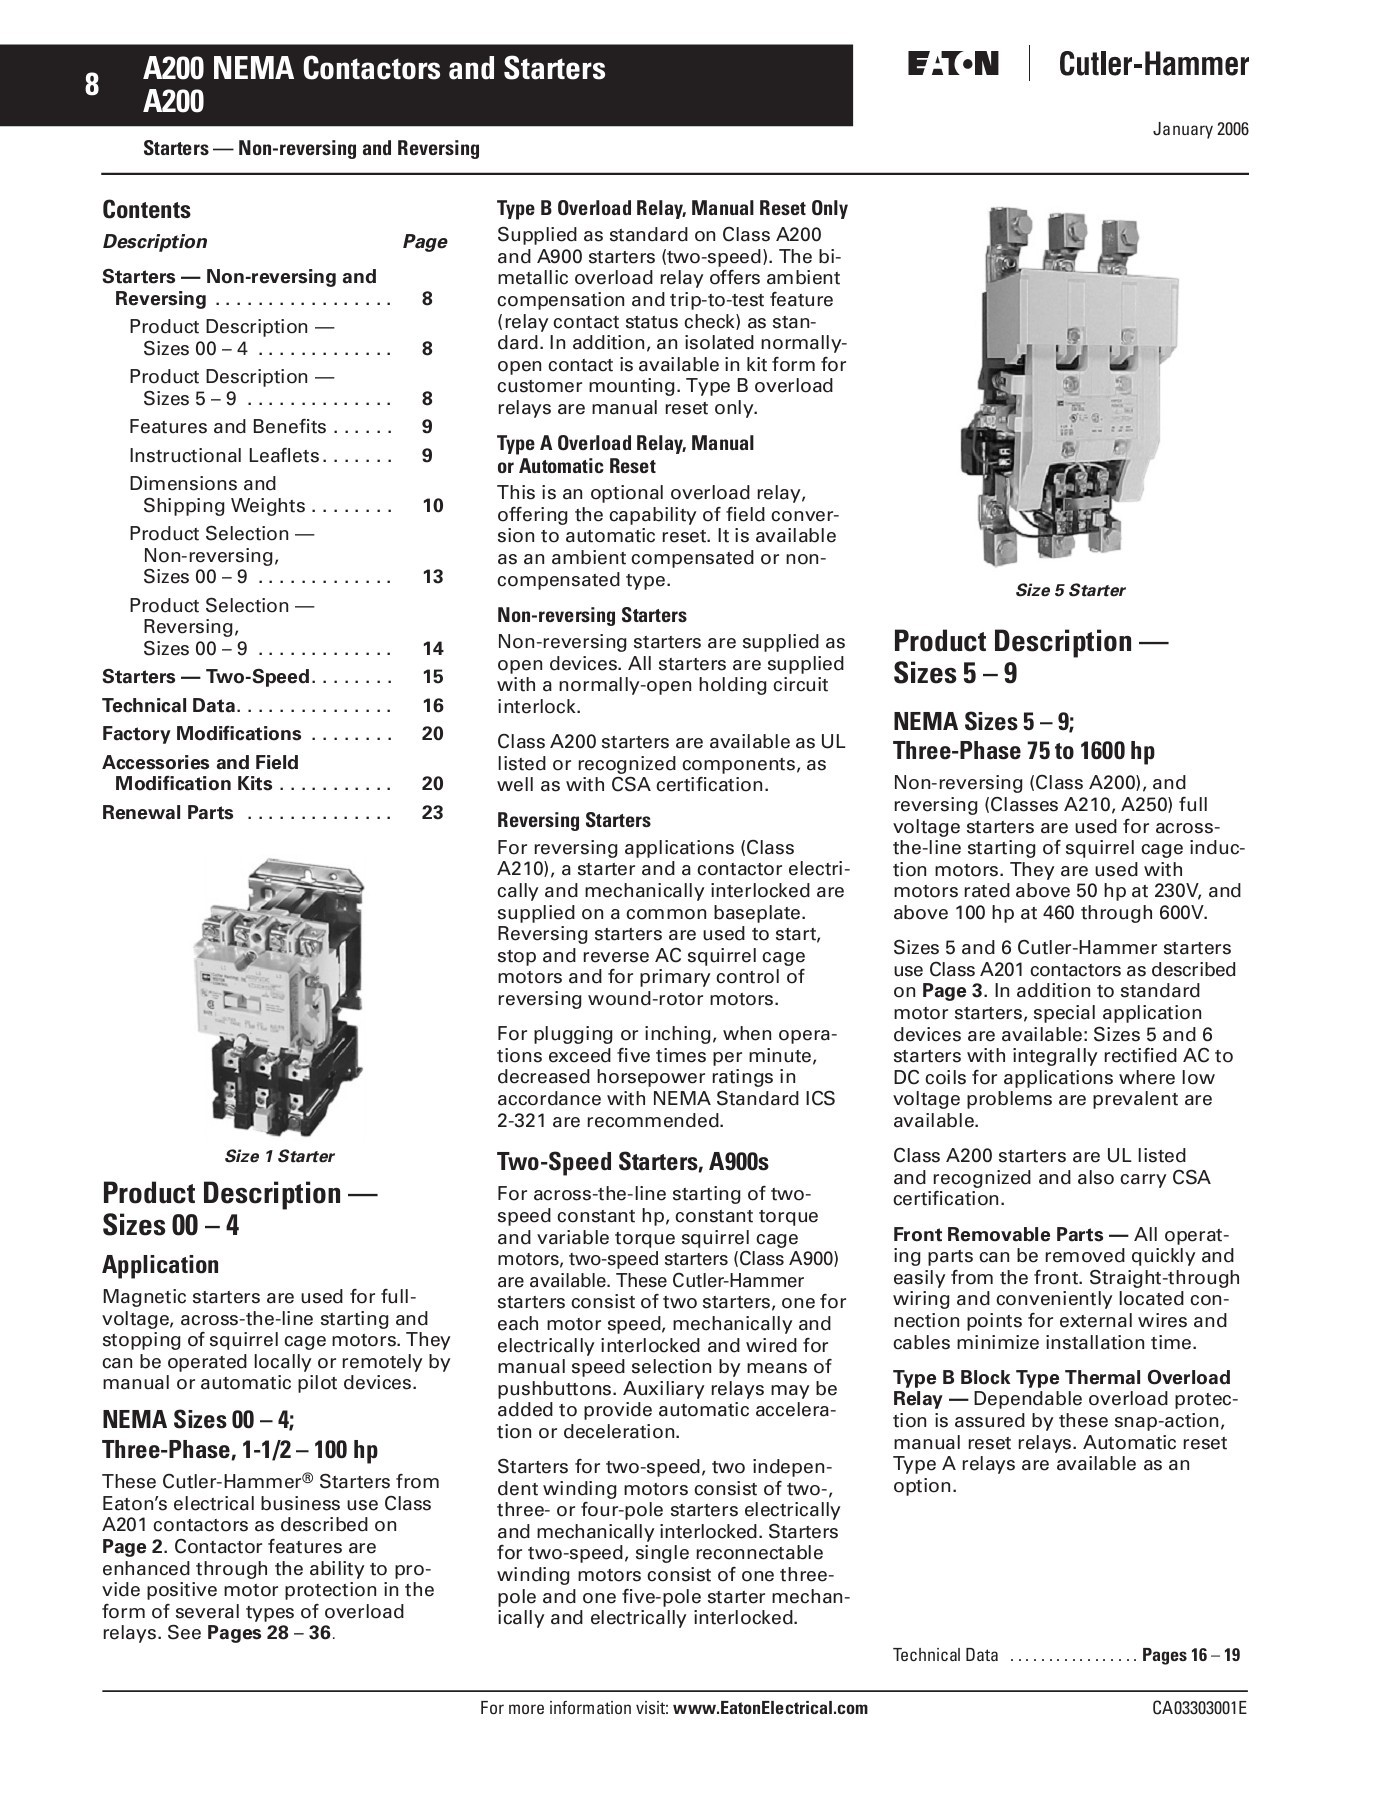 hight resolution of 8 a200 nema contactors and starters a200 pages 1 3 text version fliphtml5